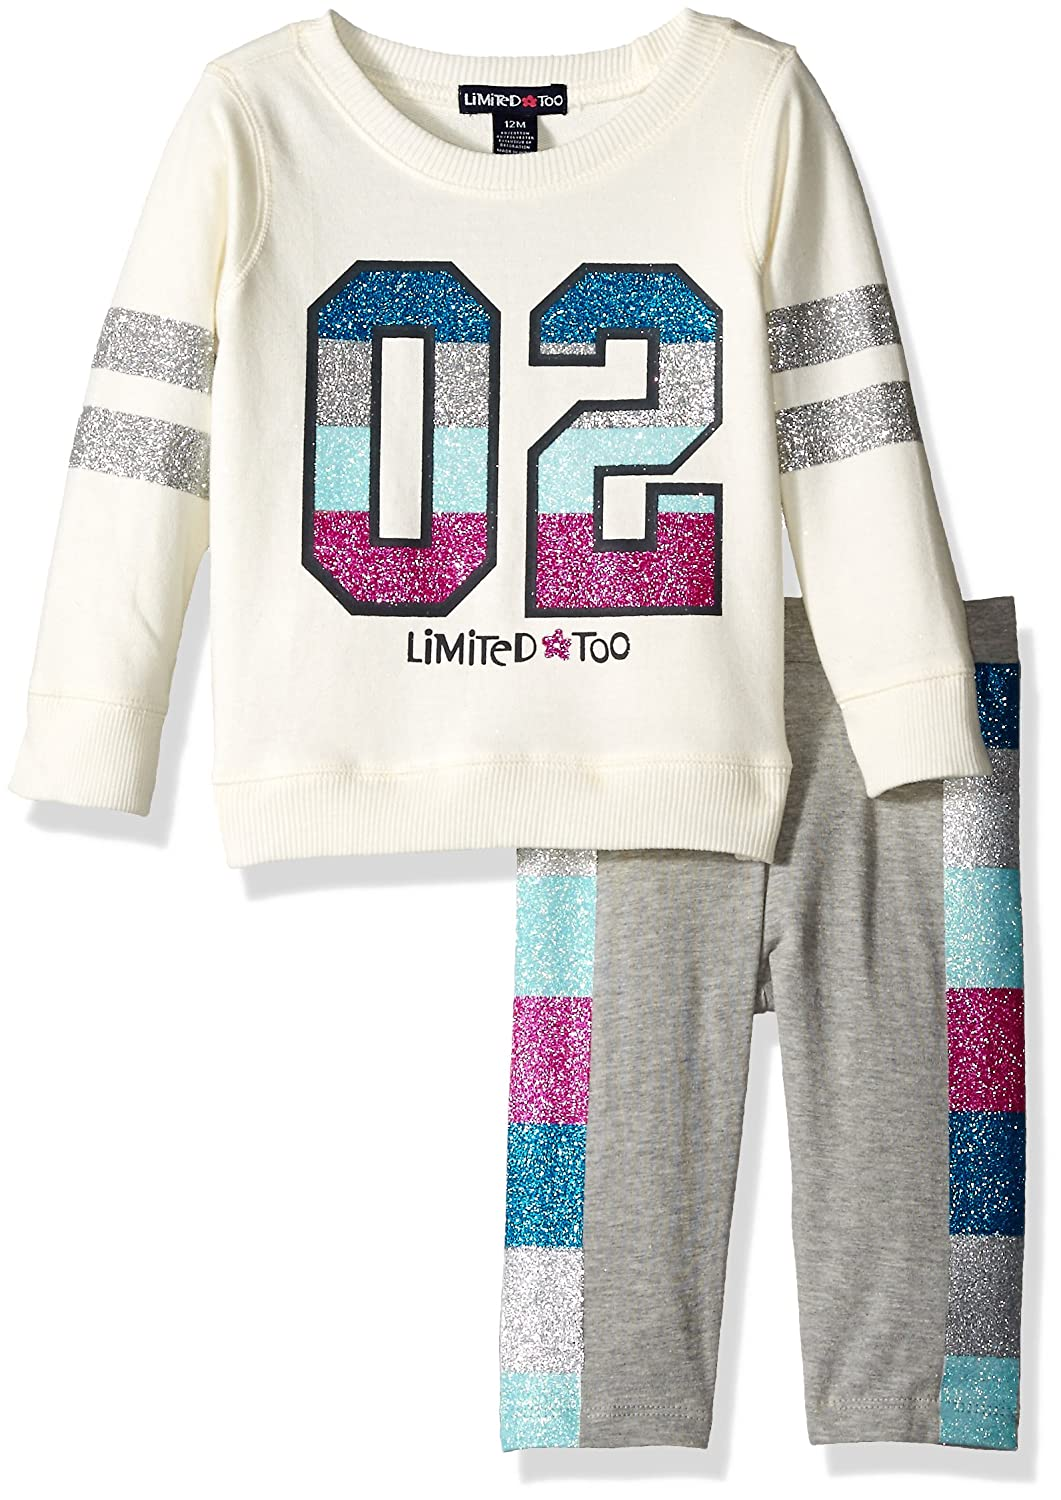 More Available Styles Girls Knit Top and Legging Set